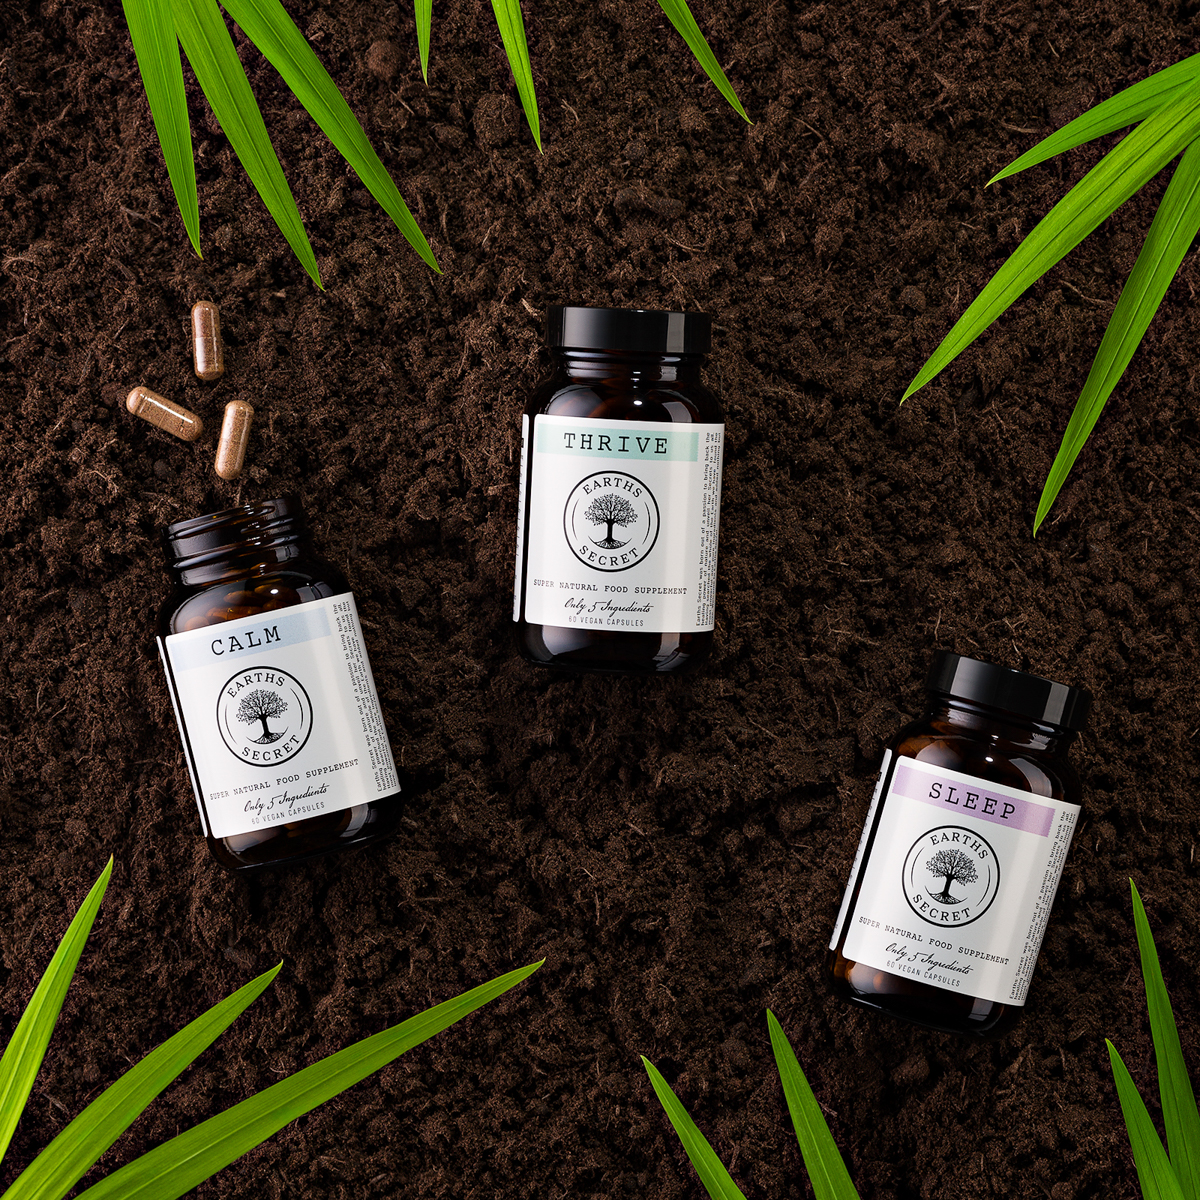 Earths Secret products laid in forest